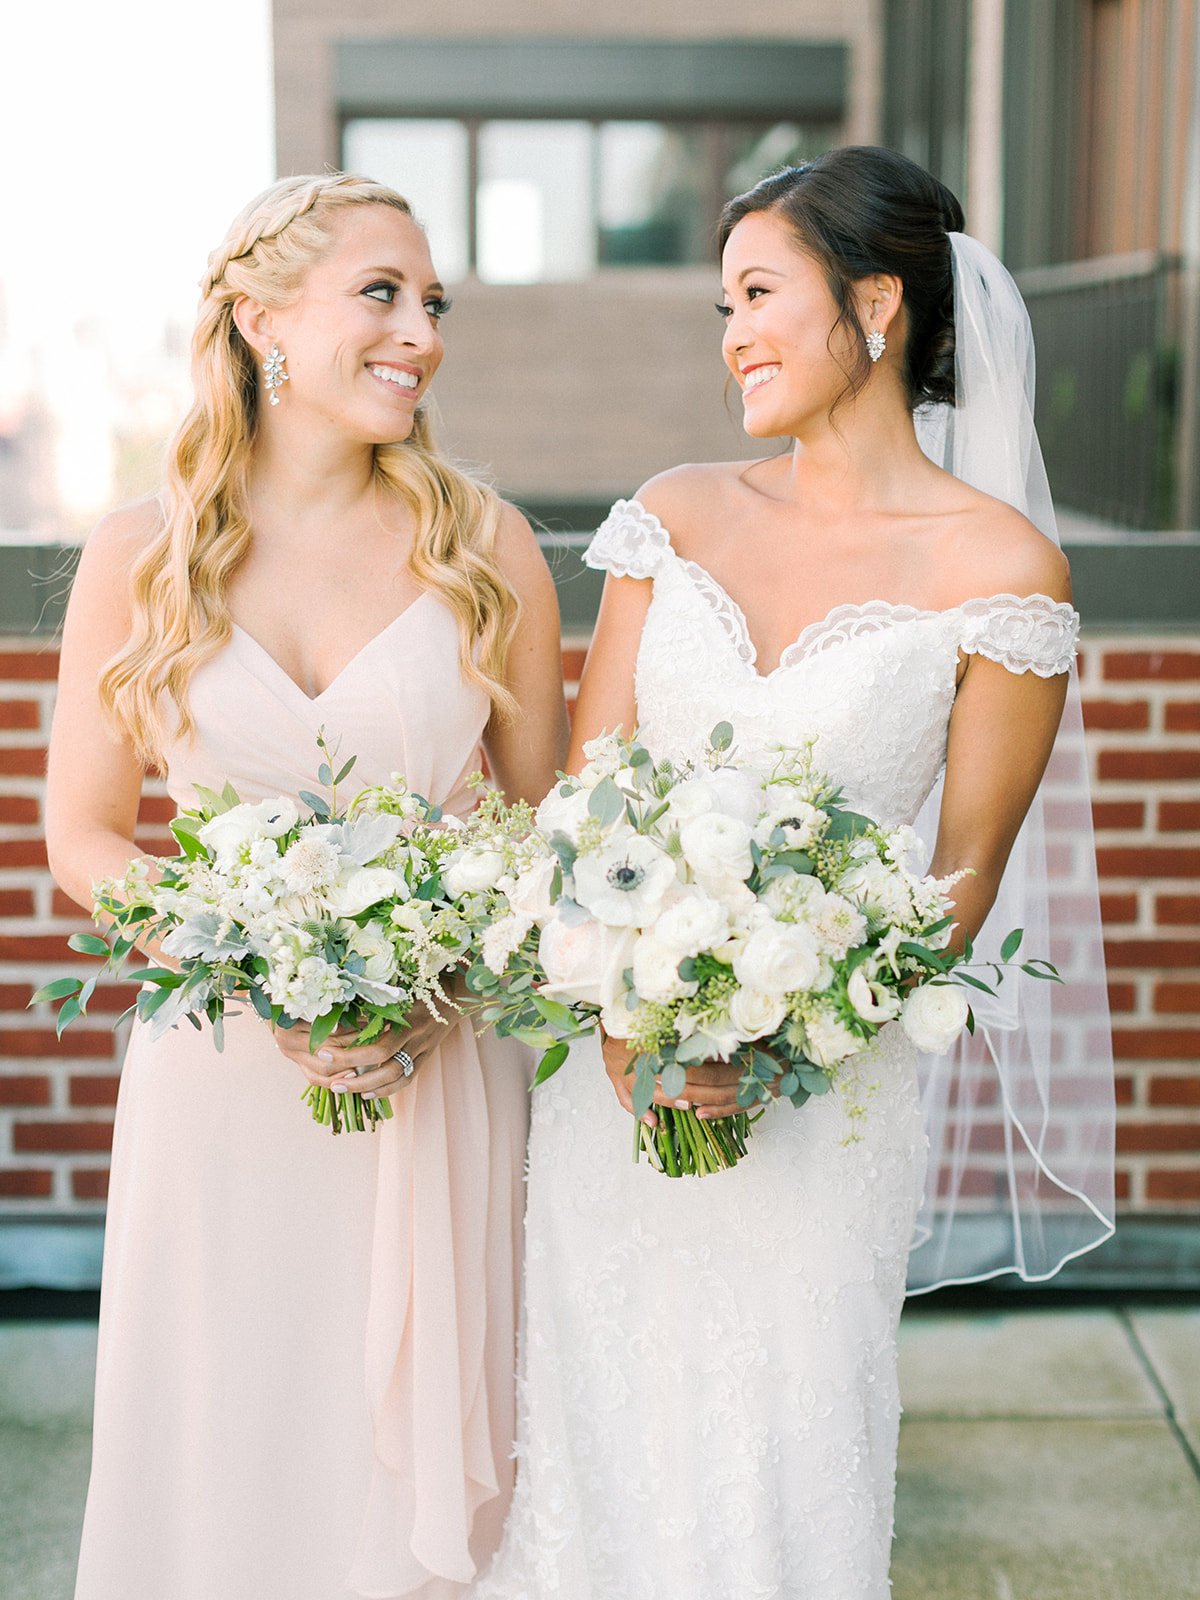 Bridesmaid with wavy blonde hair and bride with modern updo